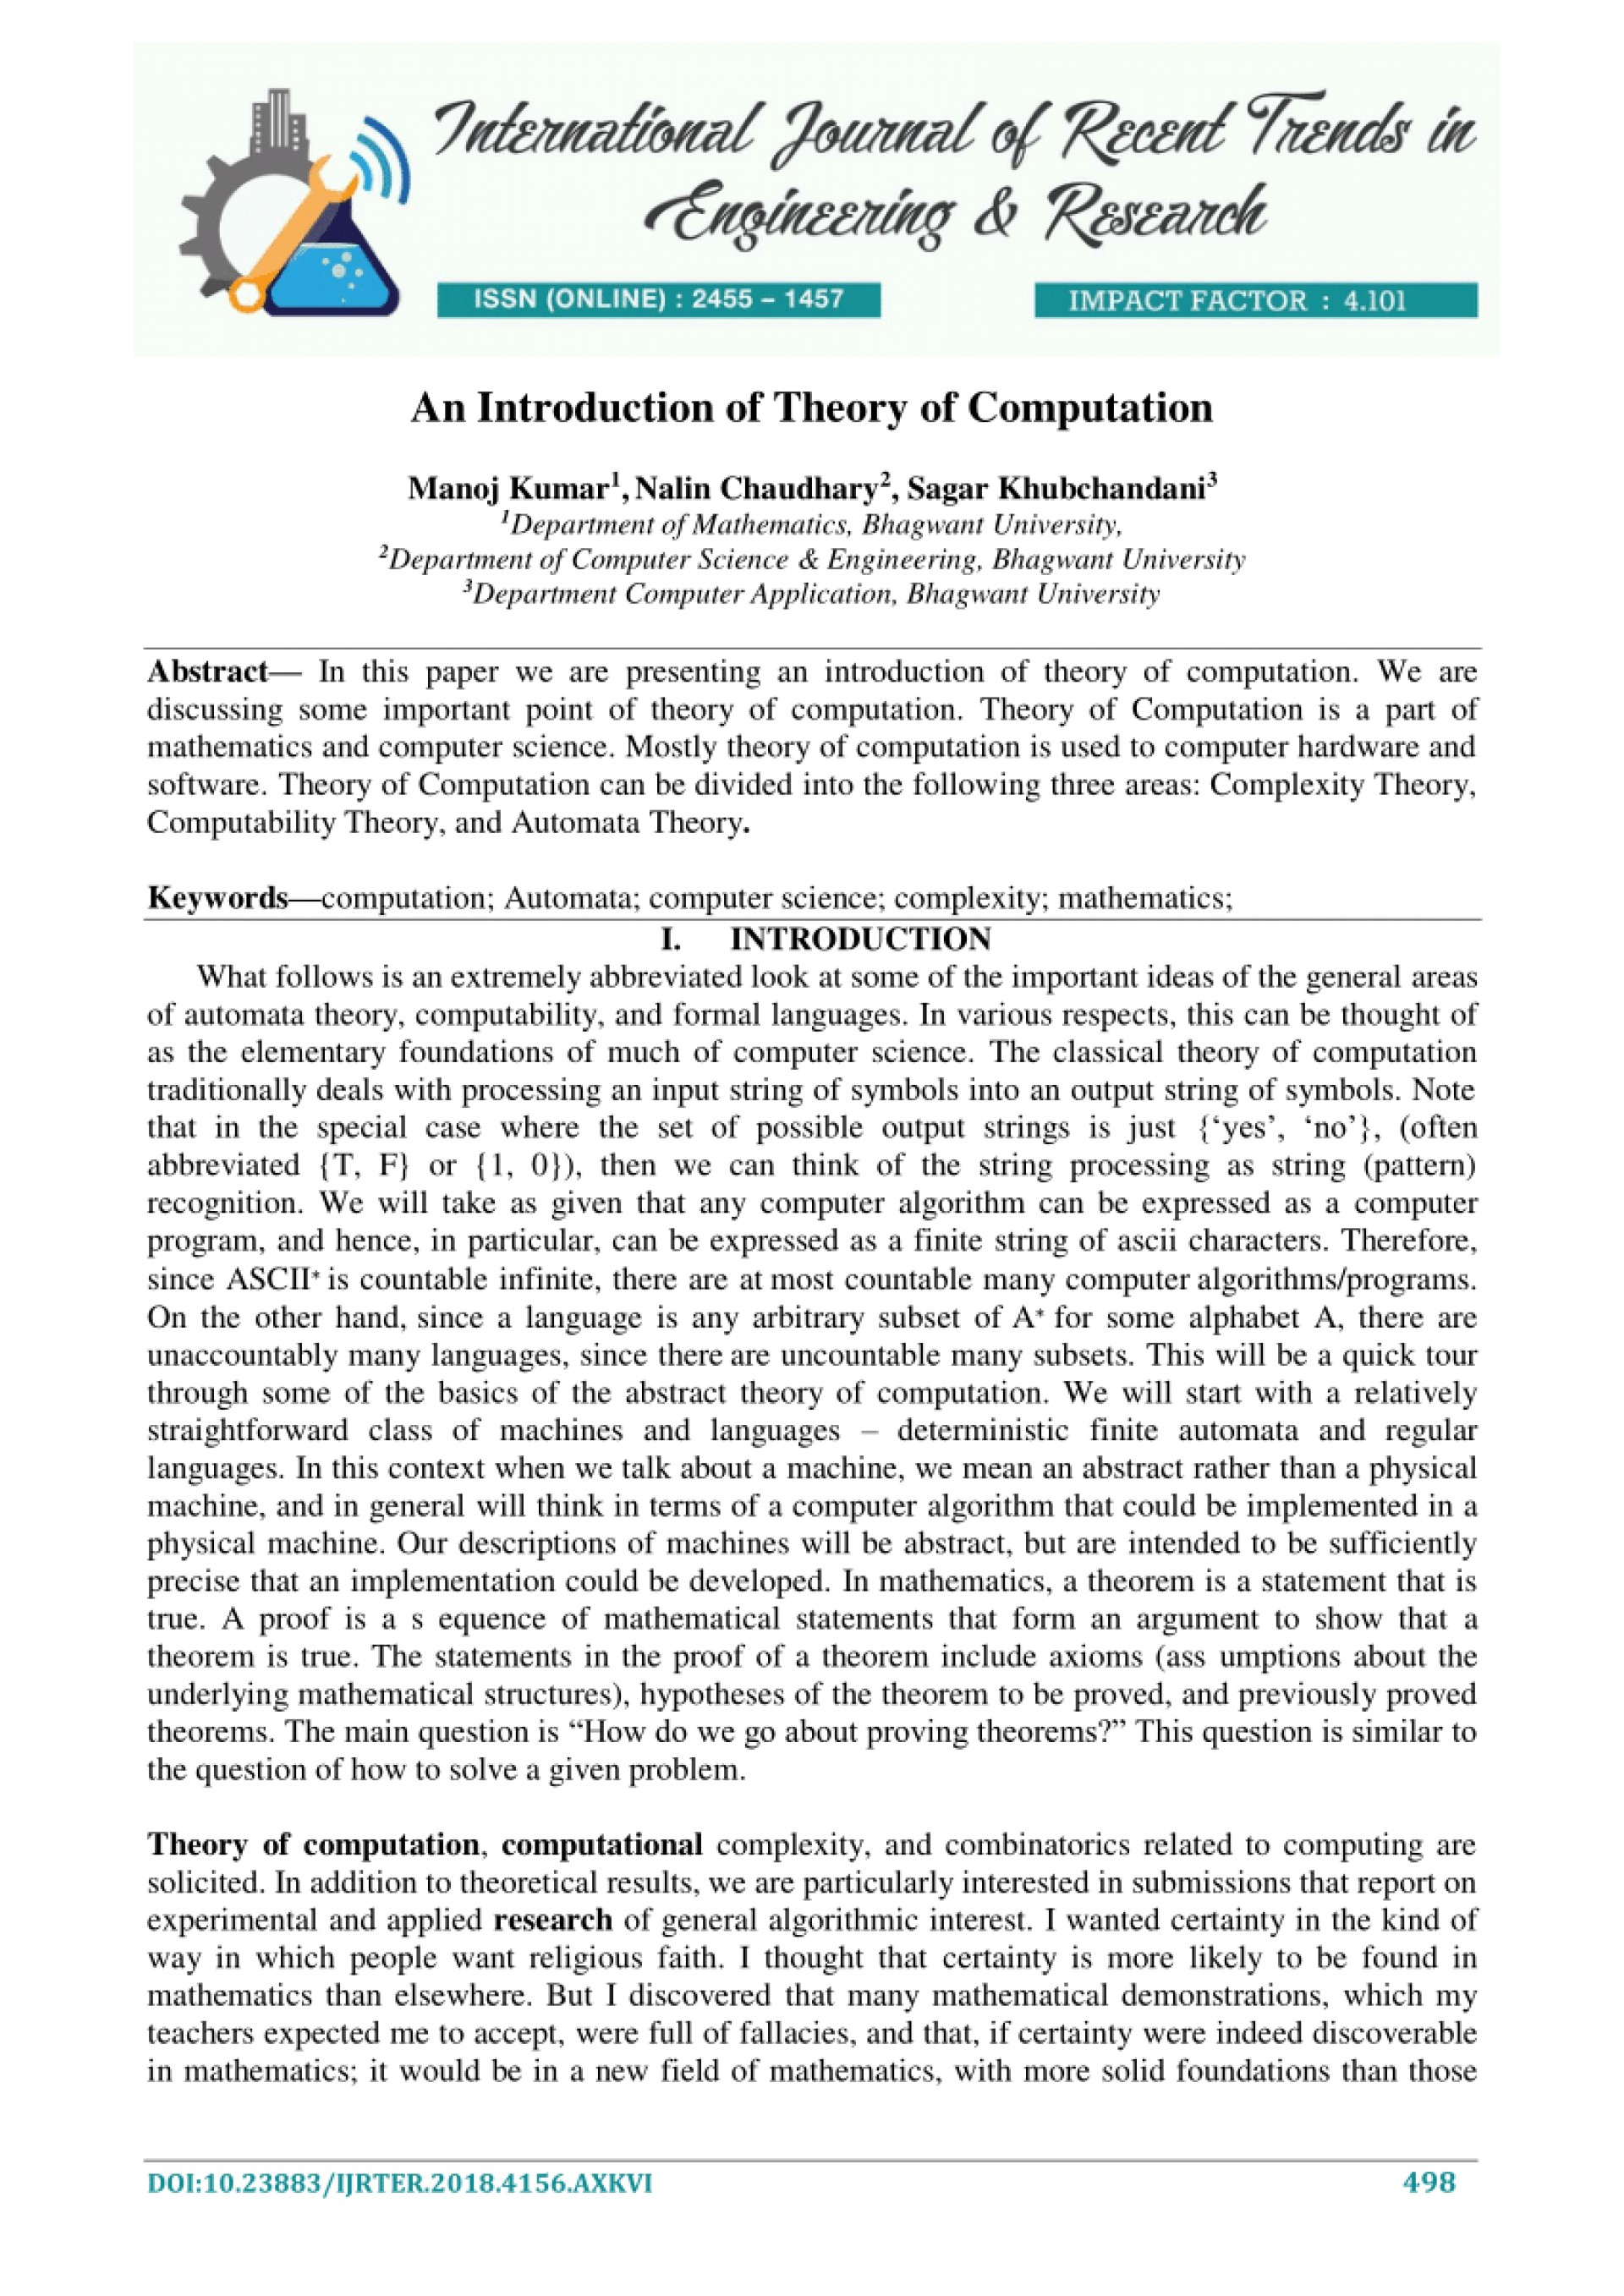 007 Latest Research Papers In Computer Science Paper Dreaded 2018 1920